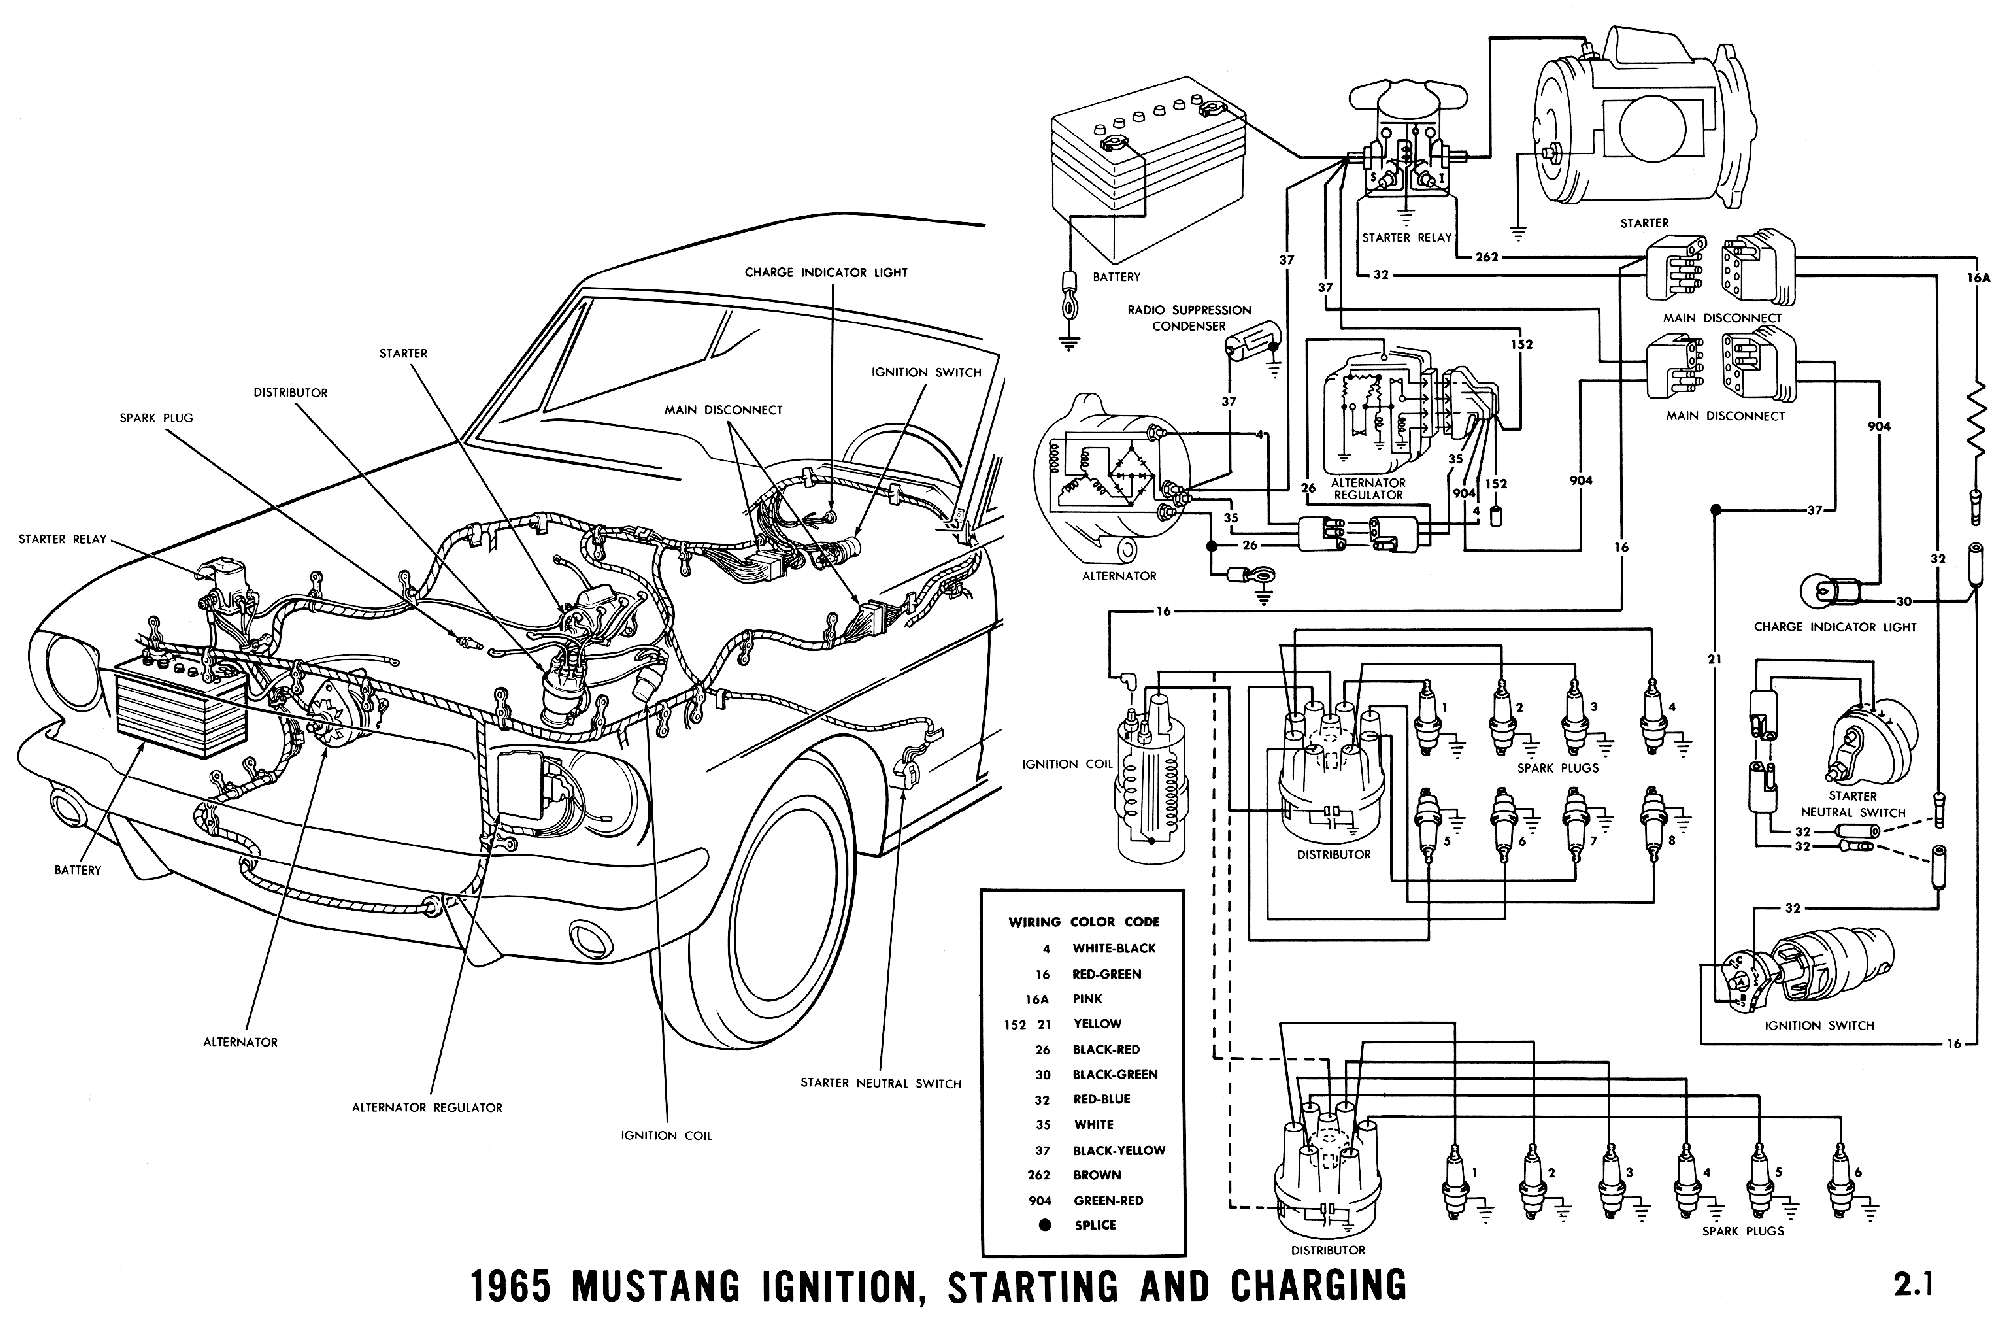 1926 Ford Wiring Diagram Model A Coupe Windshield Electrical 1965 Mustang Ignition Starting And Charging Pictorial T